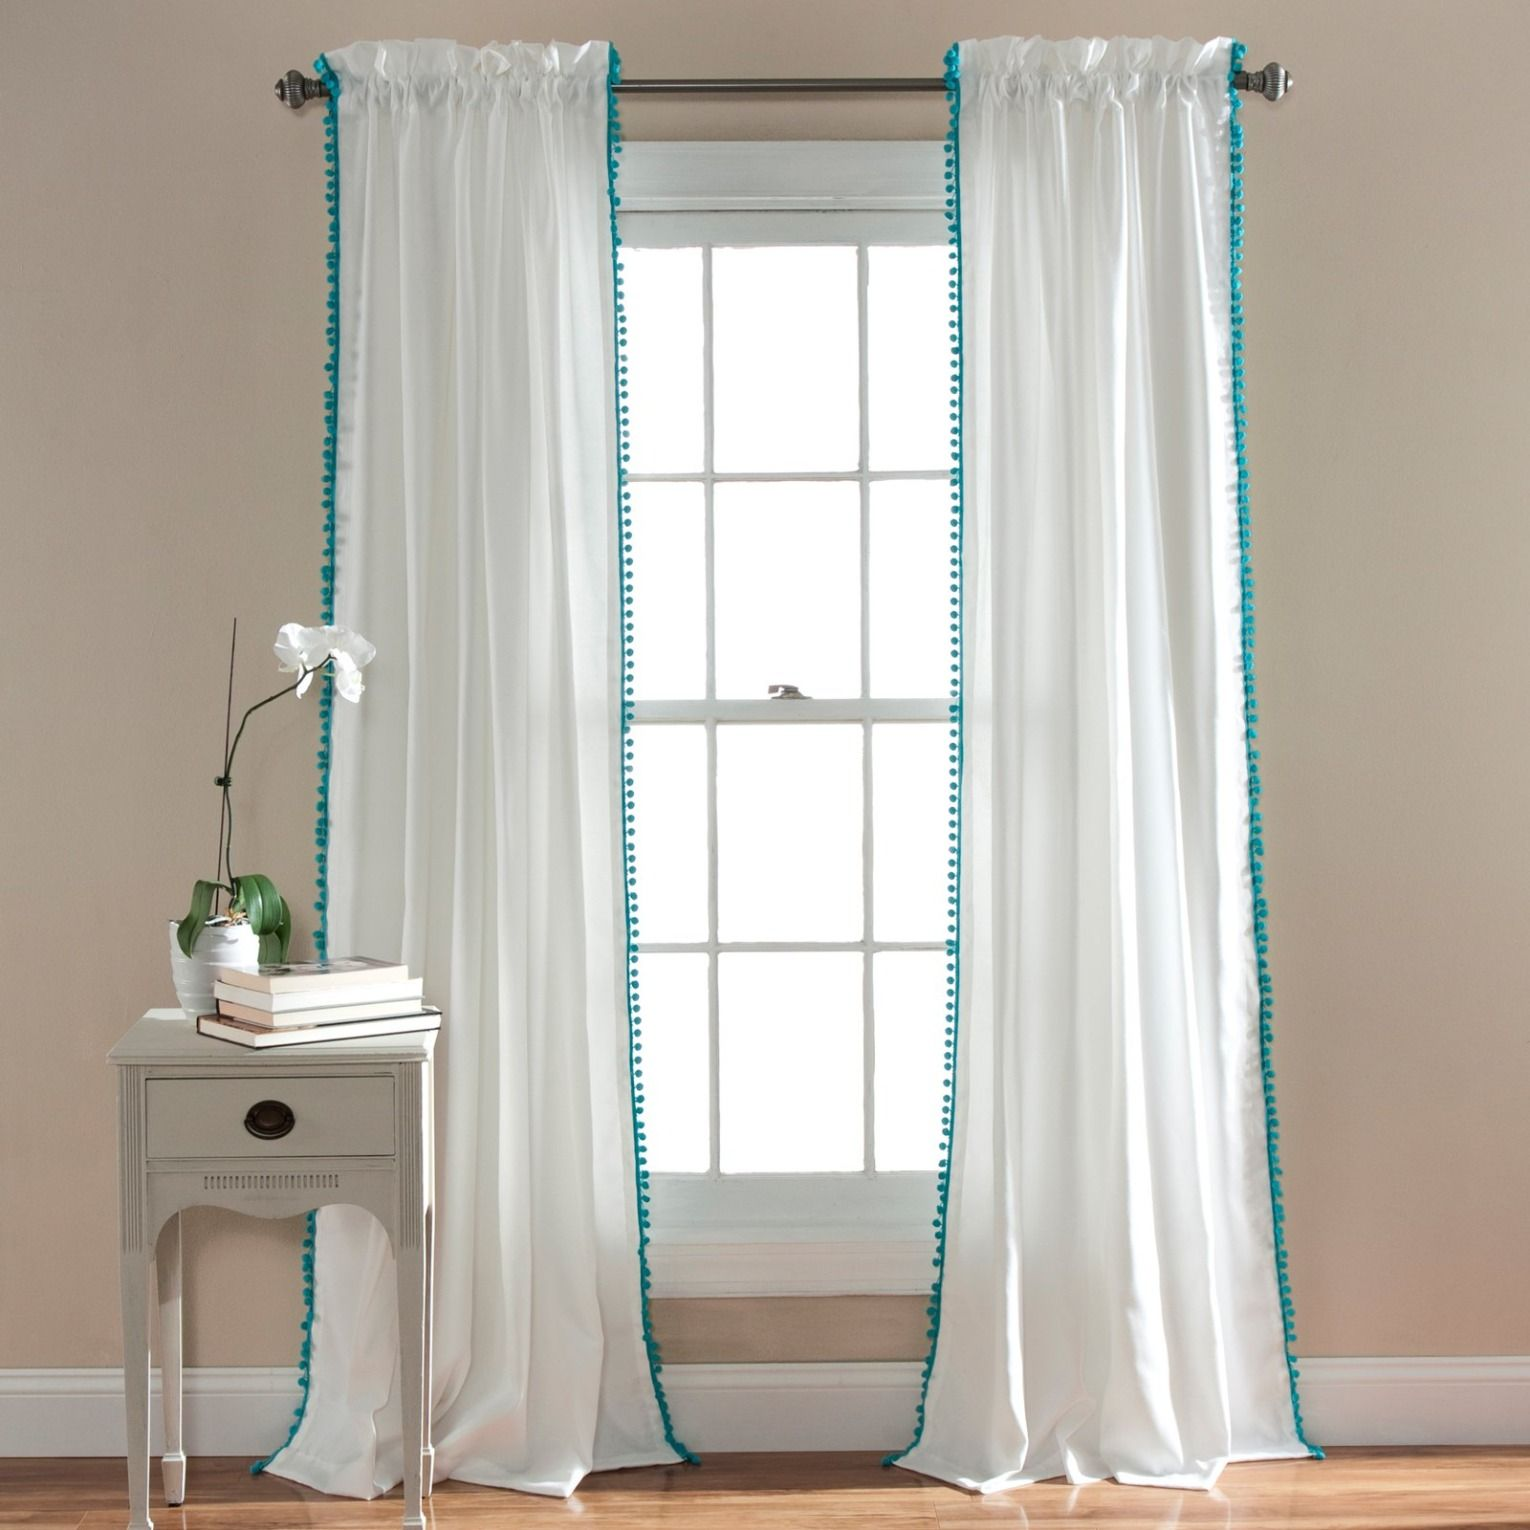 This Fun Window Curtain Panel Provides The Perfect Complement To Your Boho Chic Bedroom